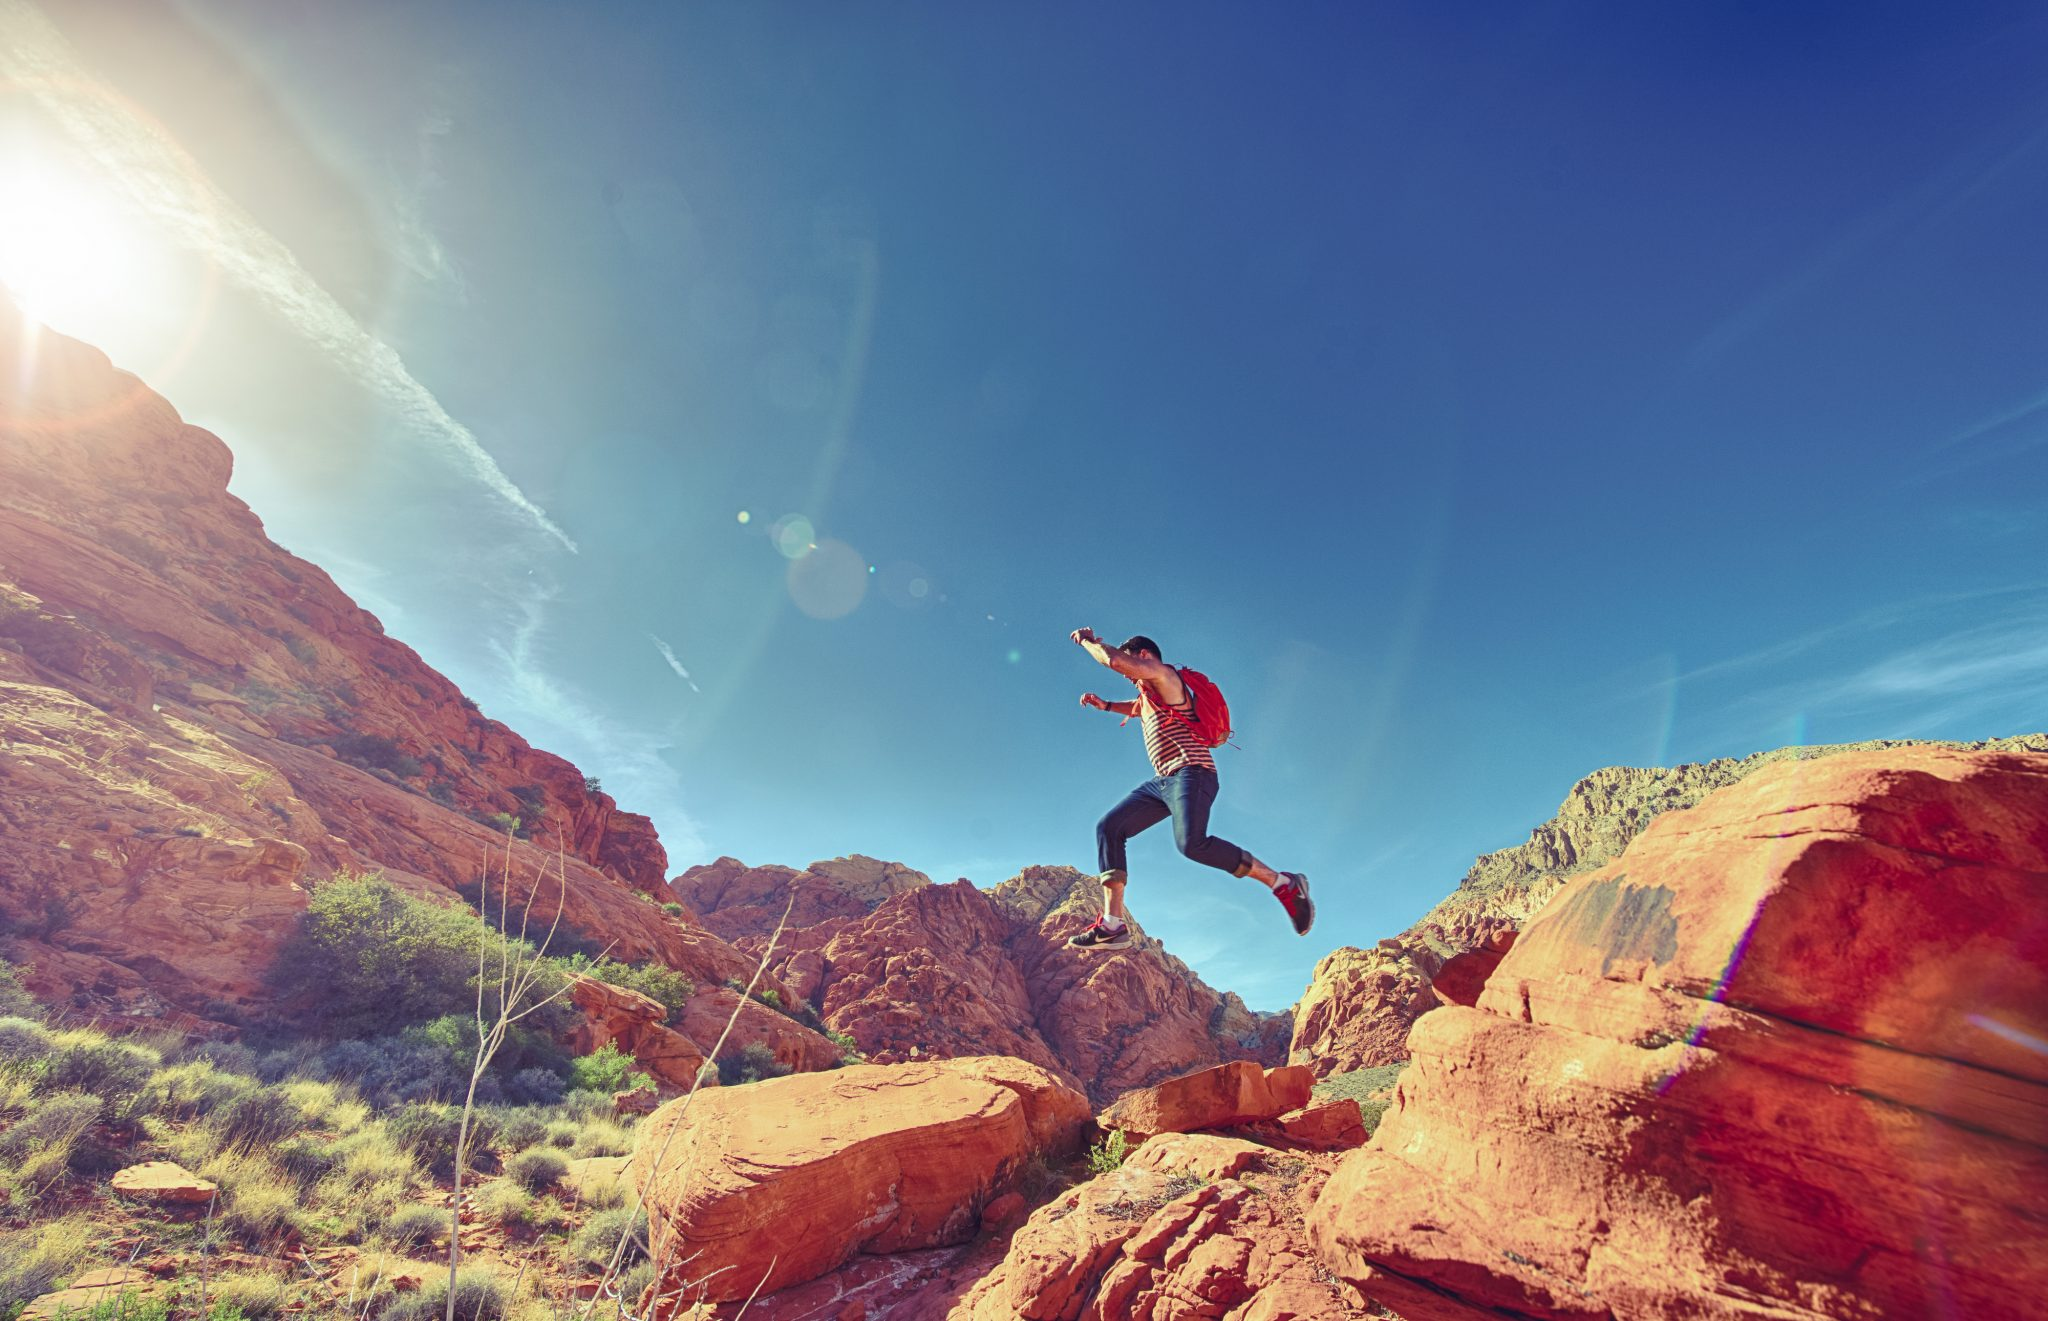 location independence, business freedom, leap of faith